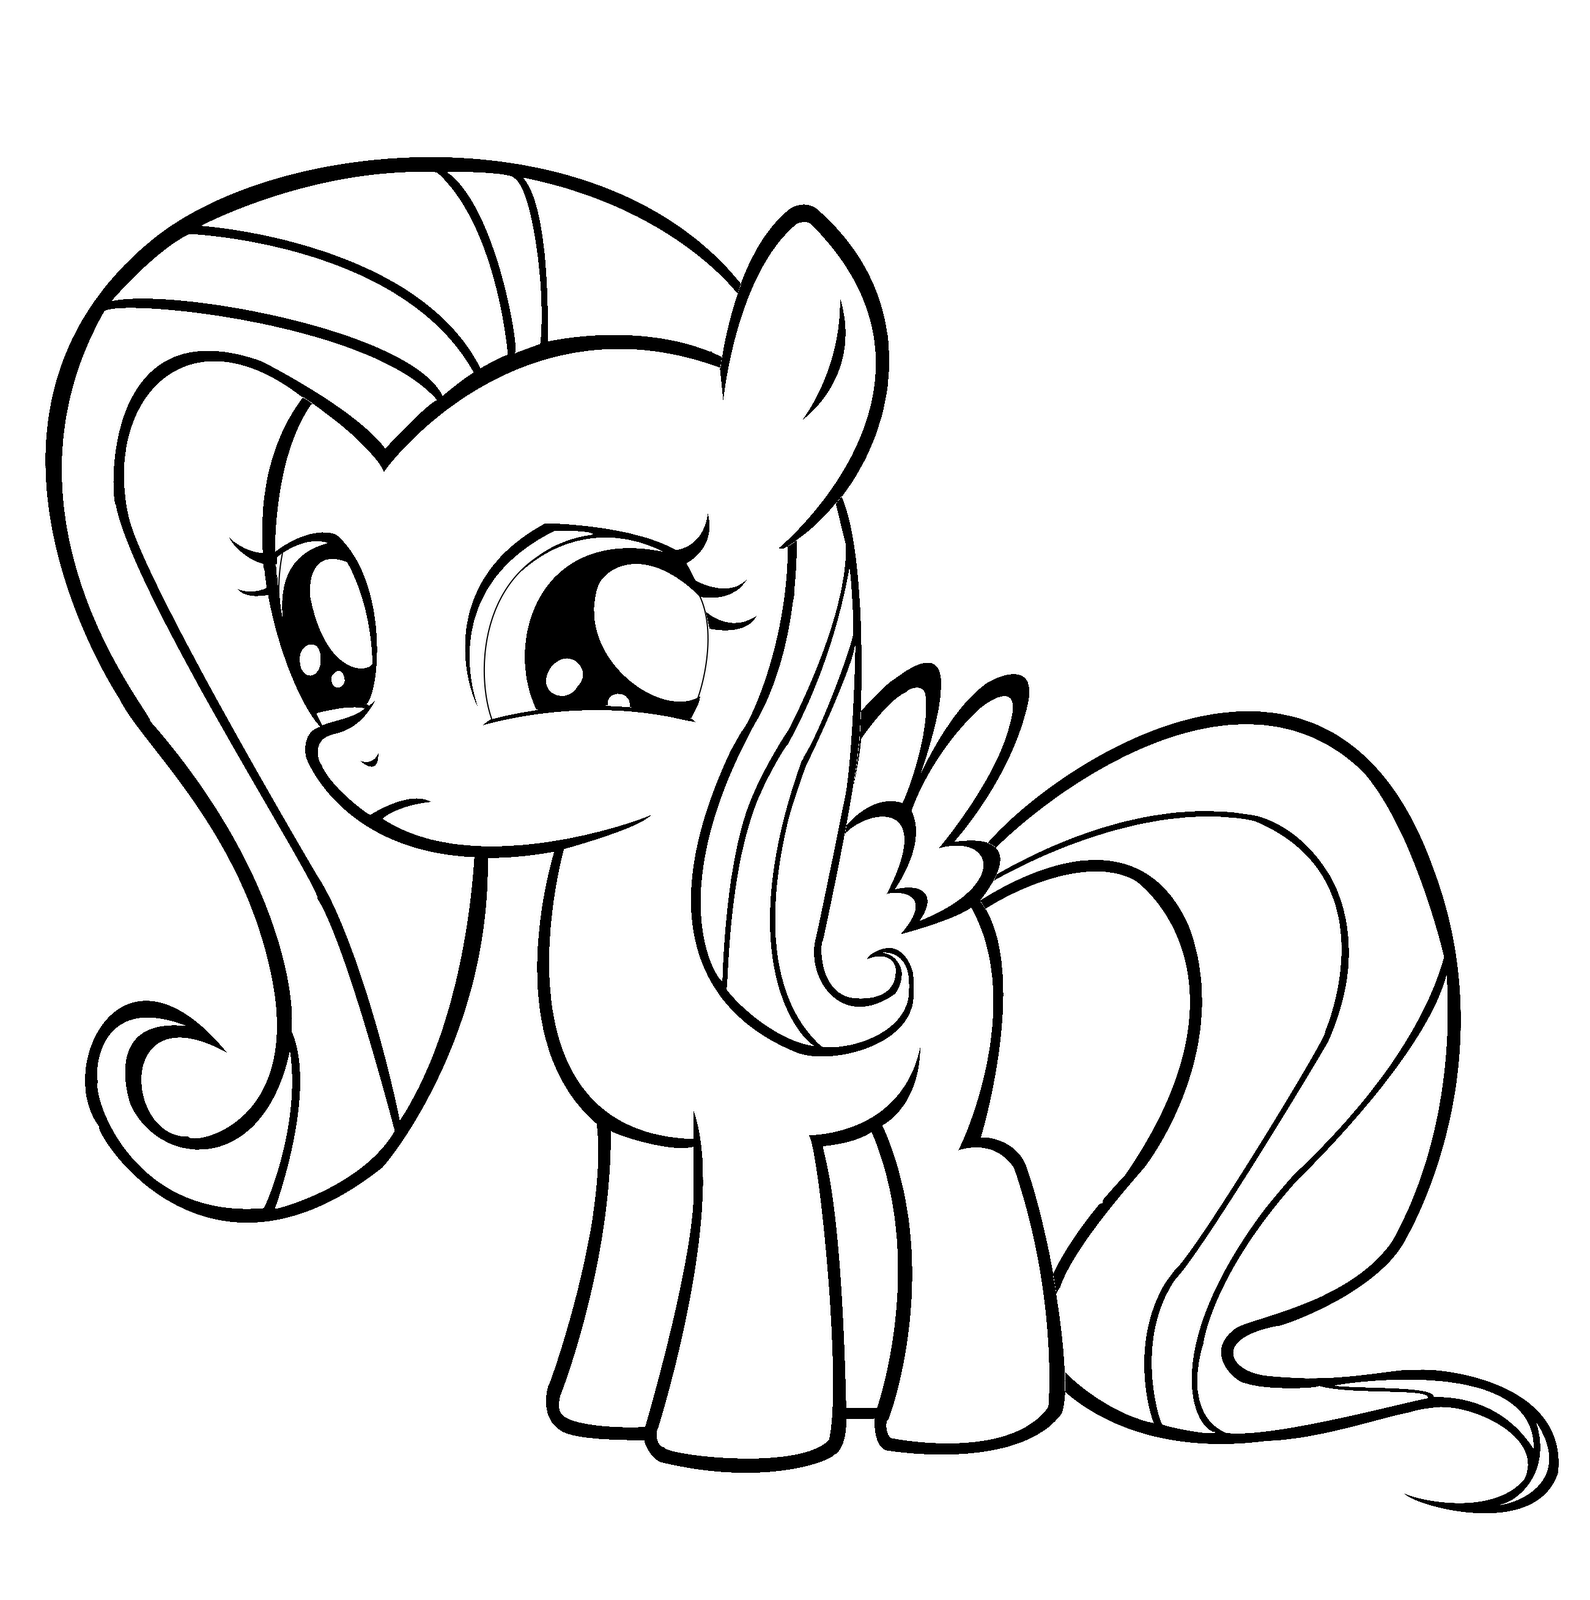 printable my little pony coloring pages free printable my little pony coloring pages for kids pony little coloring printable my pages